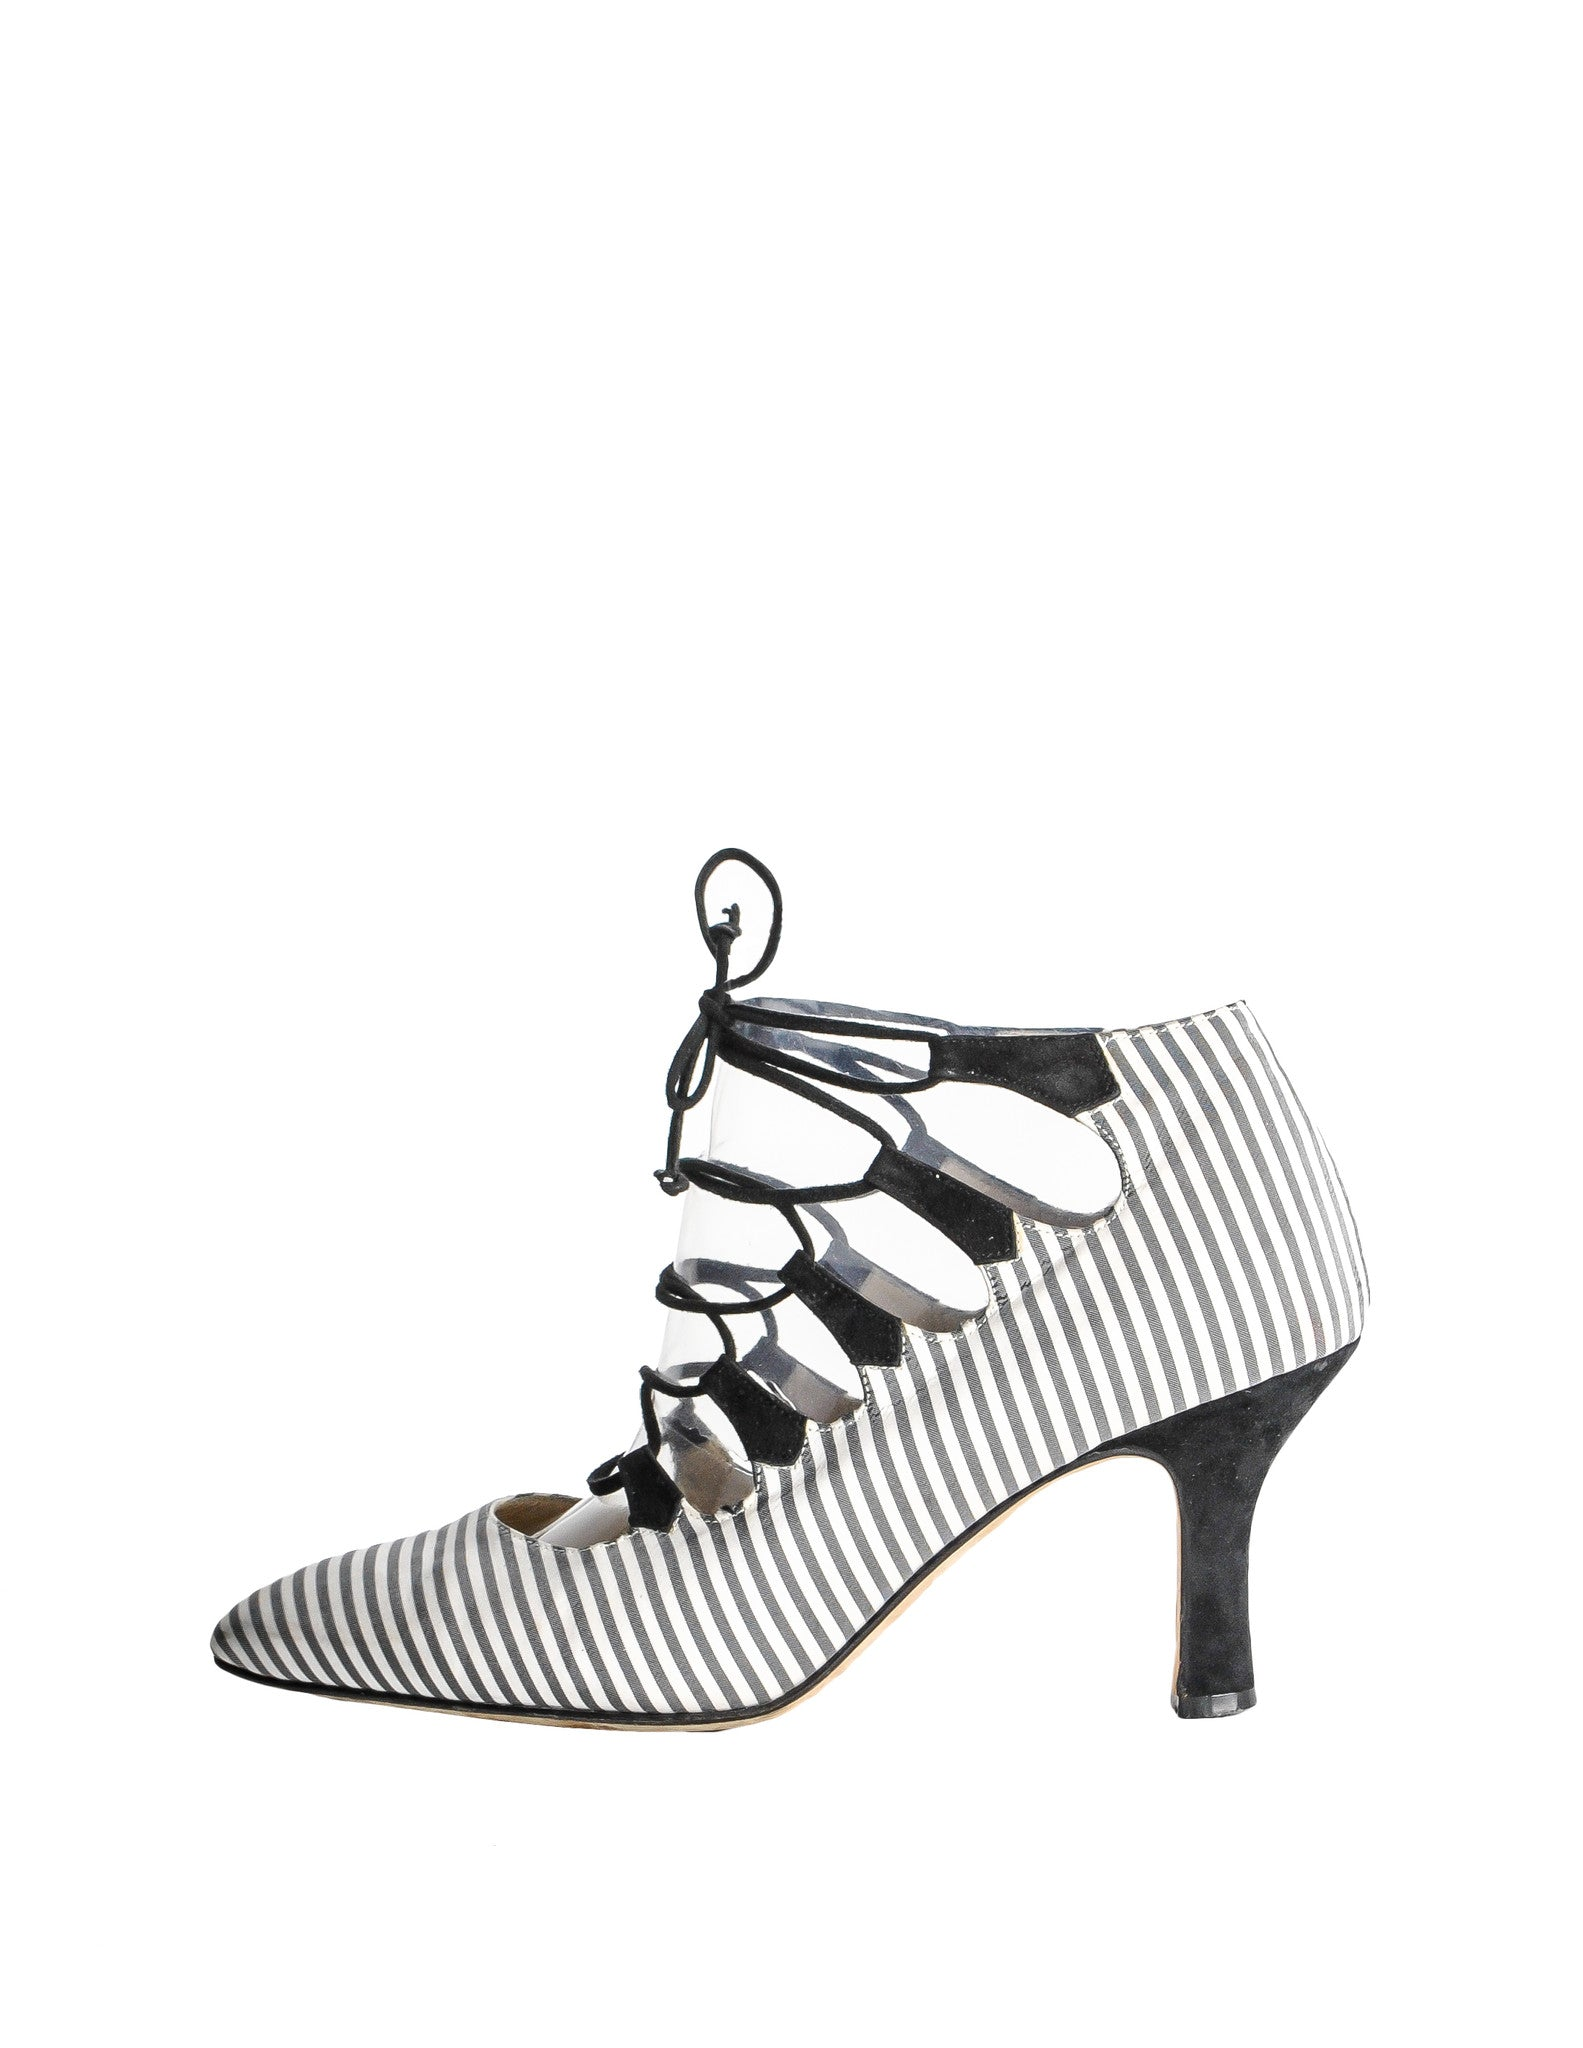 Manolo Blahnik Vintage Striped Lace Up Heels - Amarcord Vintage Fashion  - 1